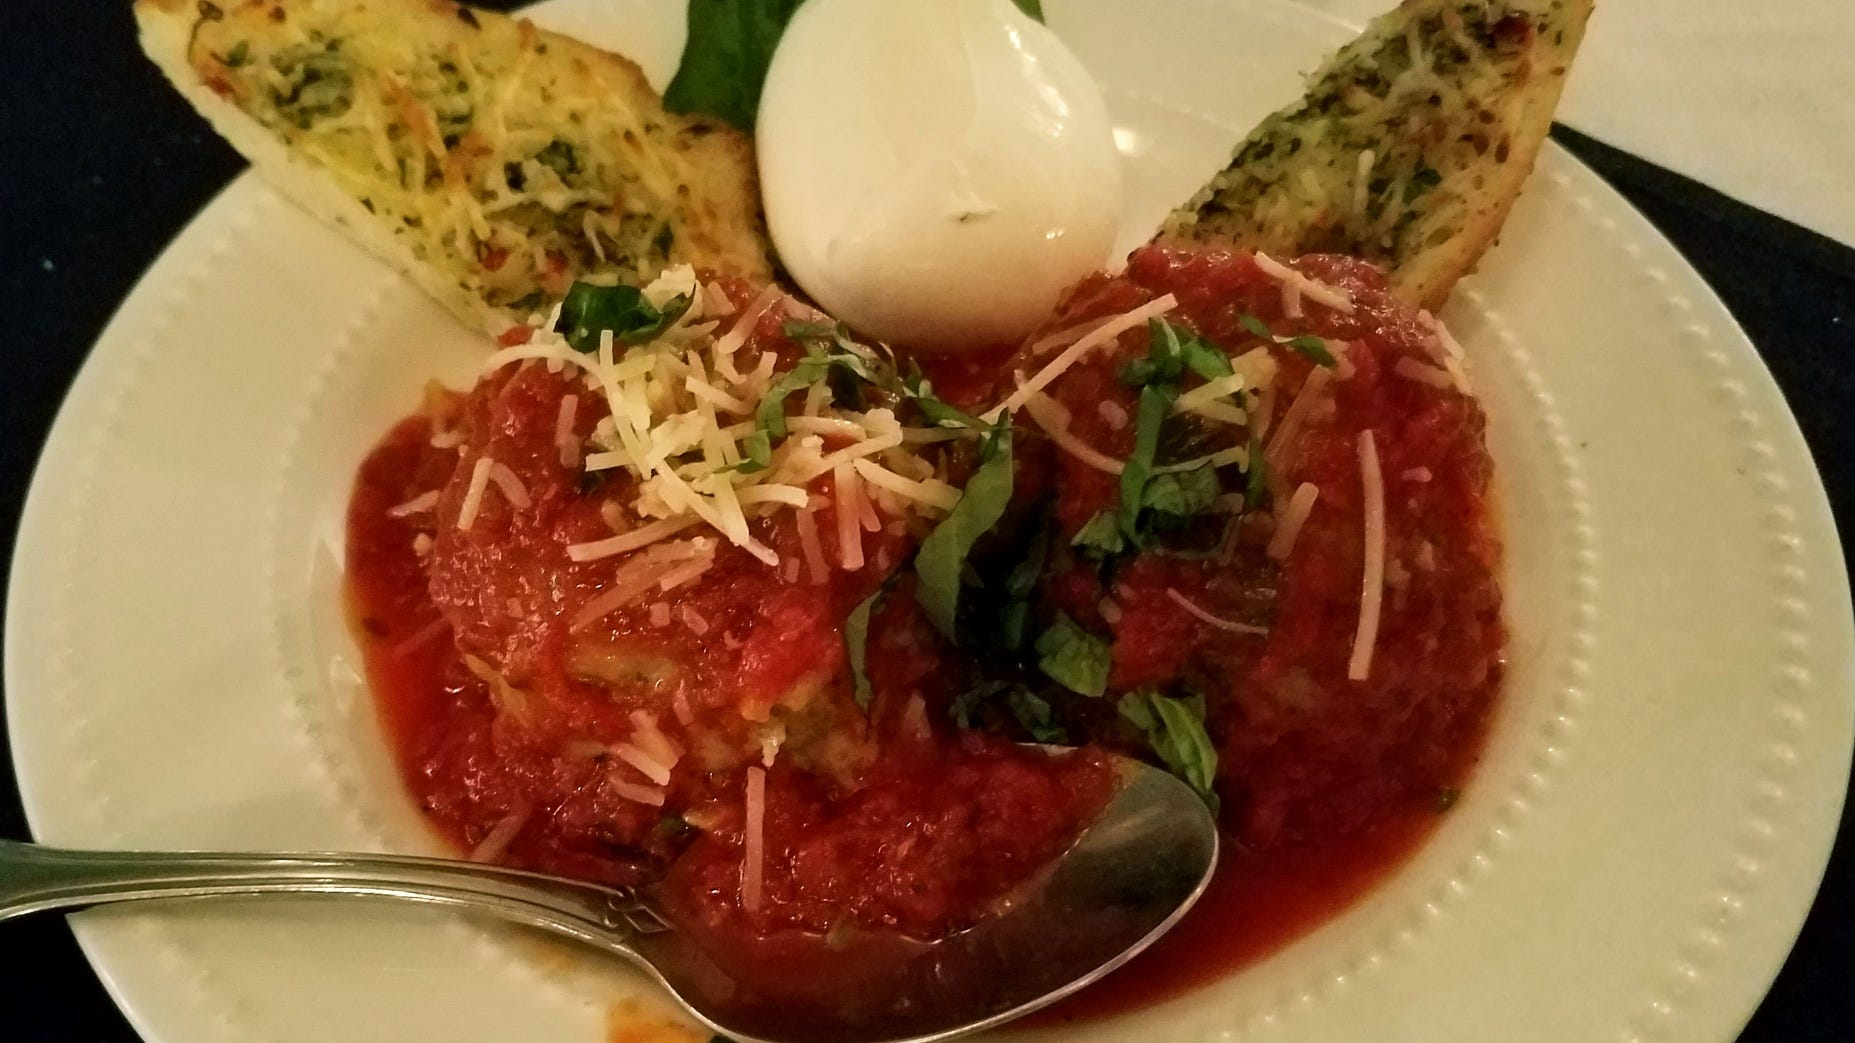 The meatballs and burrata appetizer at 18...